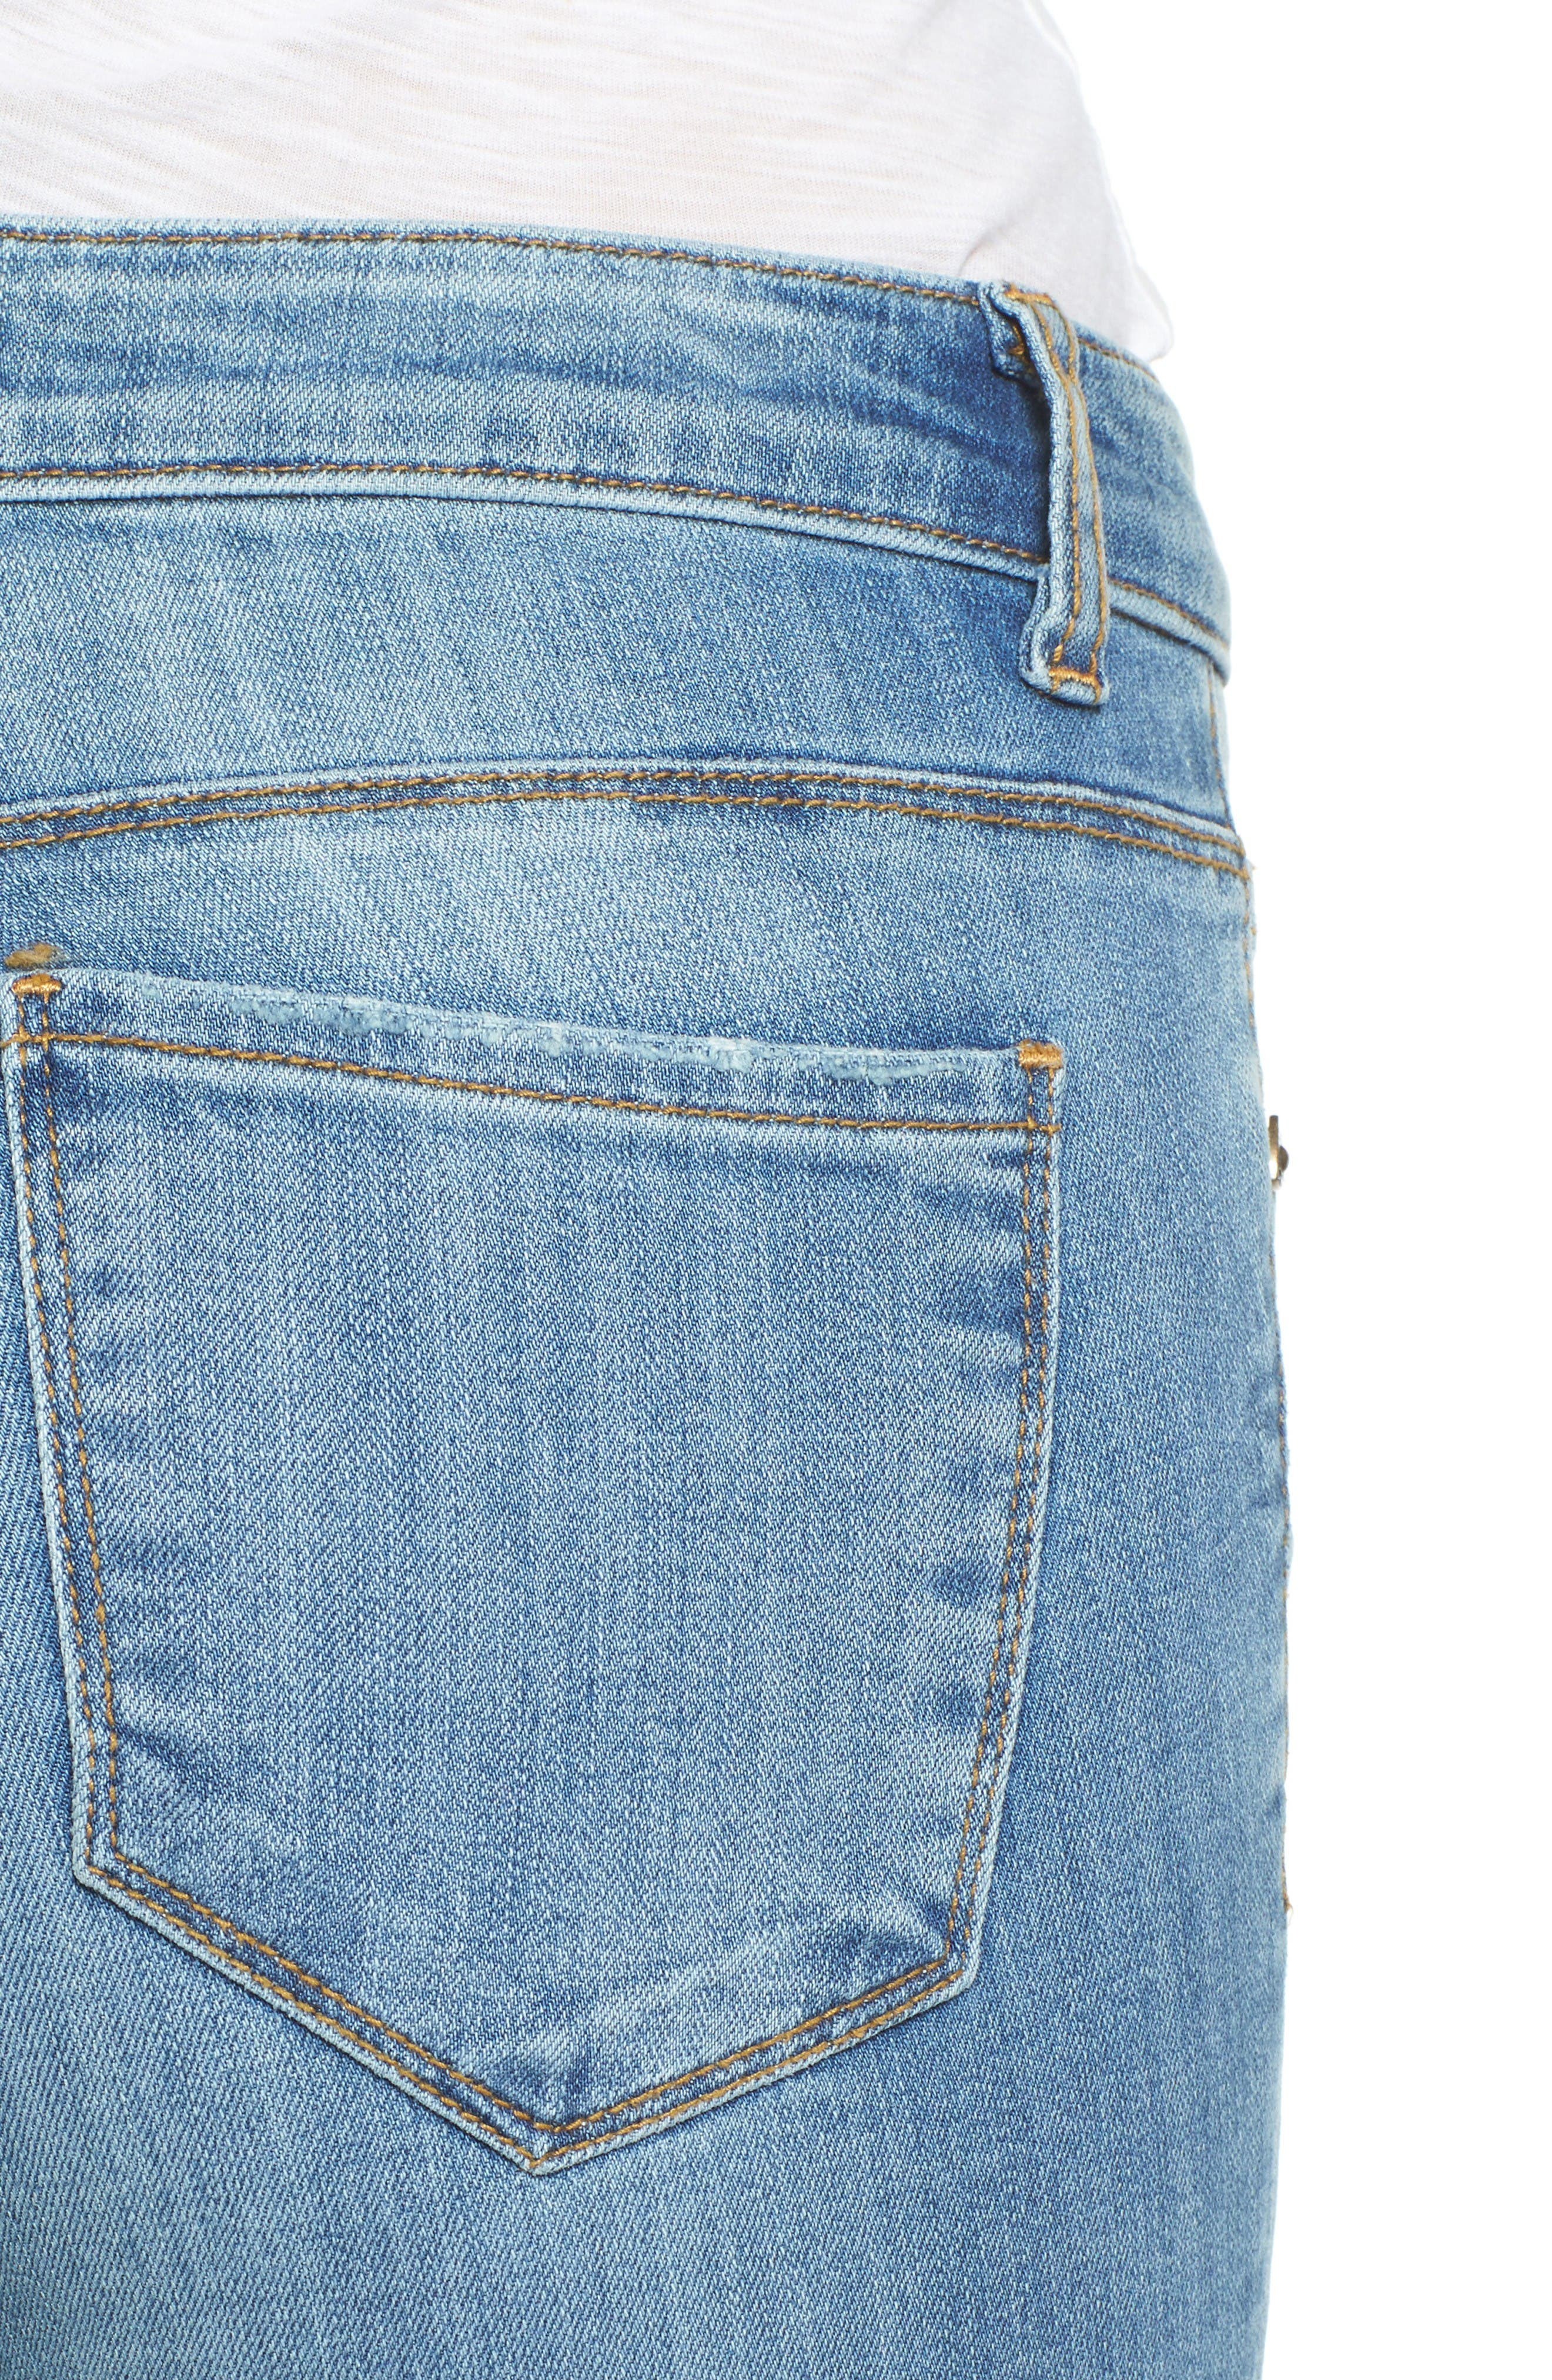 Alternate Image 4  - KUT from the Kloth Reese Frayed Straight Leg Ankle Jeans (Participation)